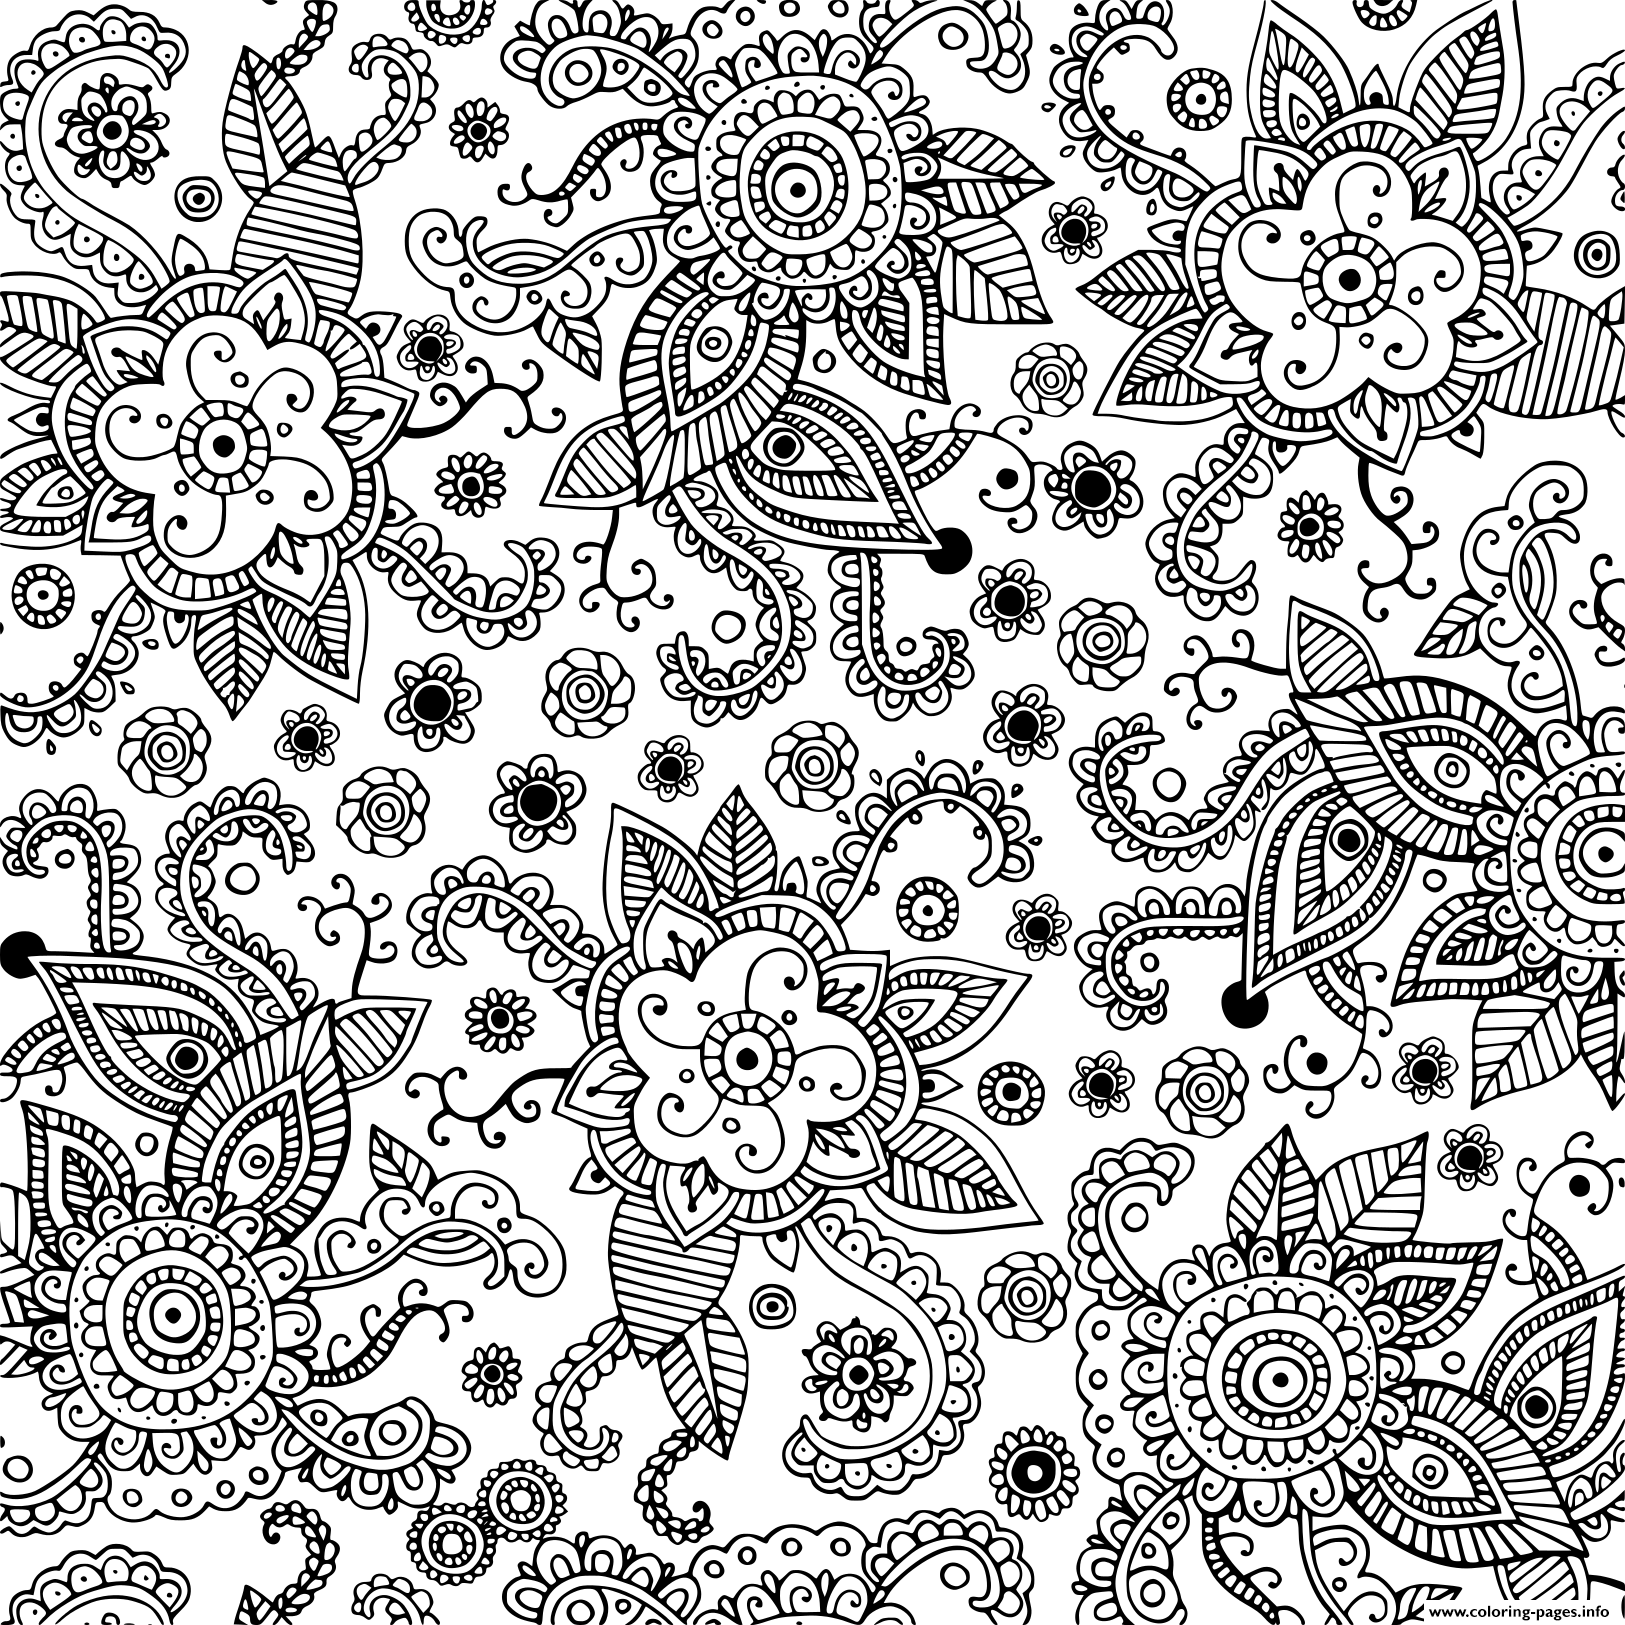 free doodle art to print and color seamless pattern for adults doodle graphic art coloring art free to print color and doodle